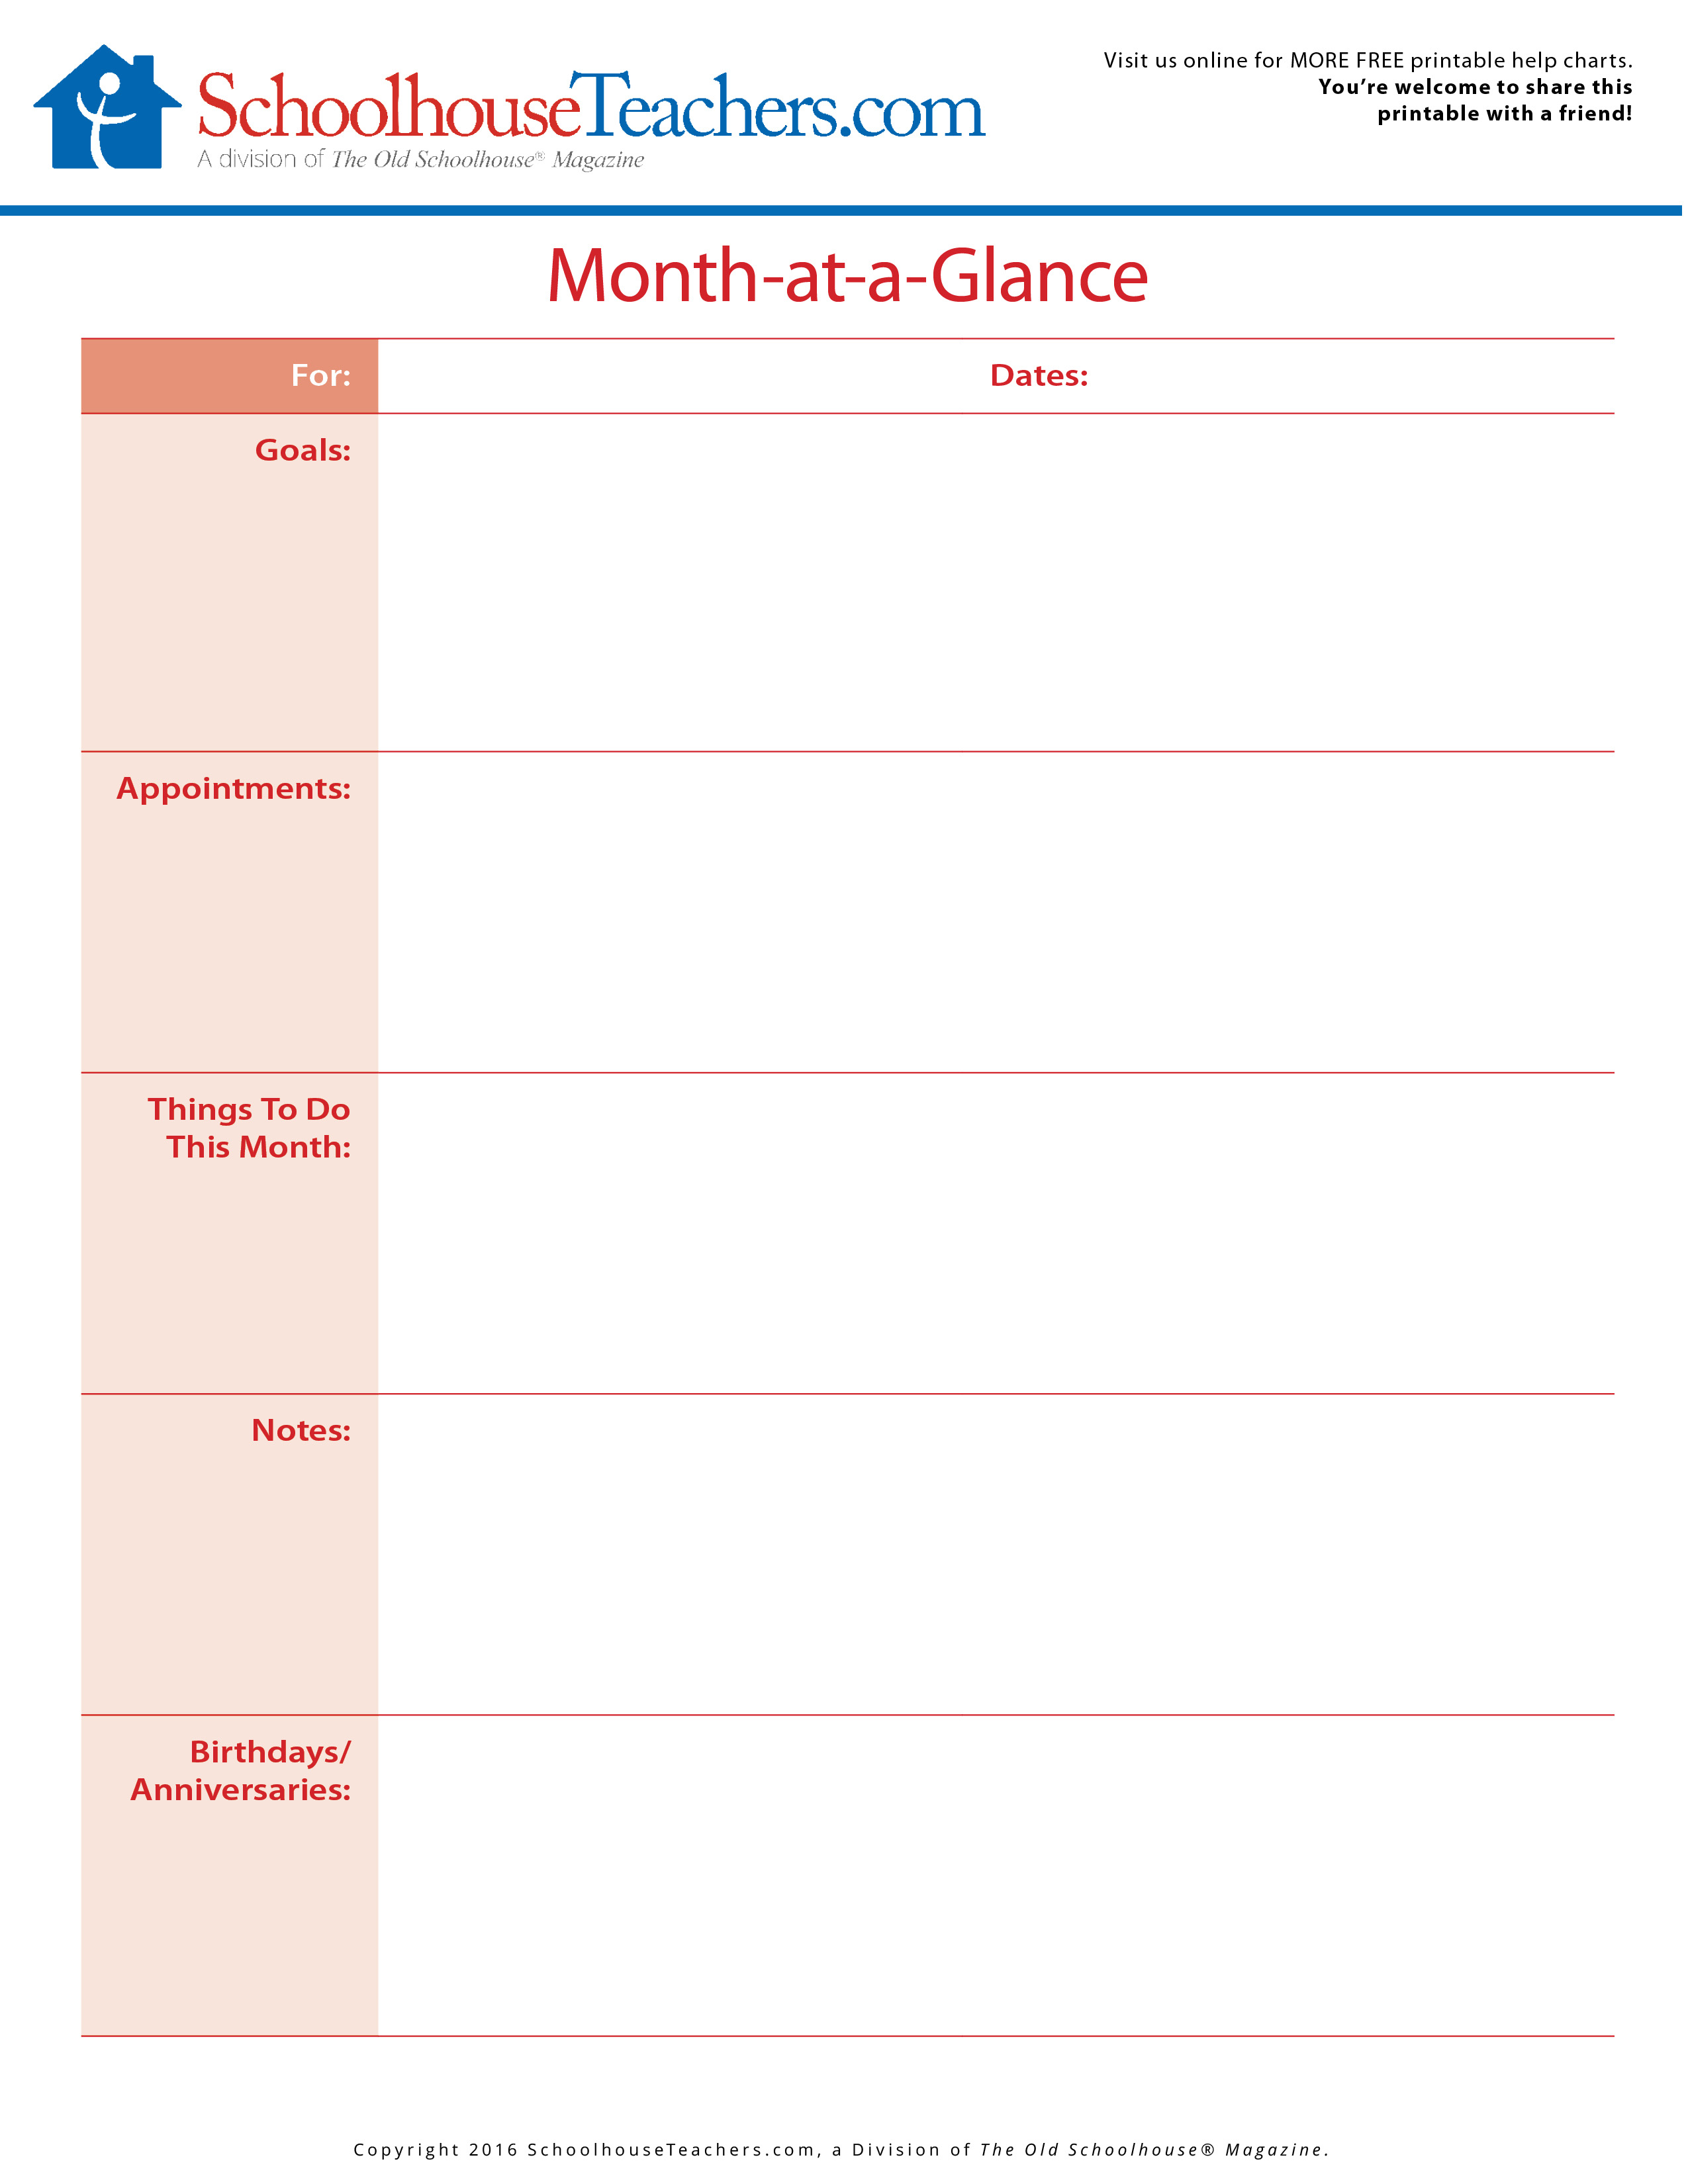 free printable monthly goals and month at a glance planner